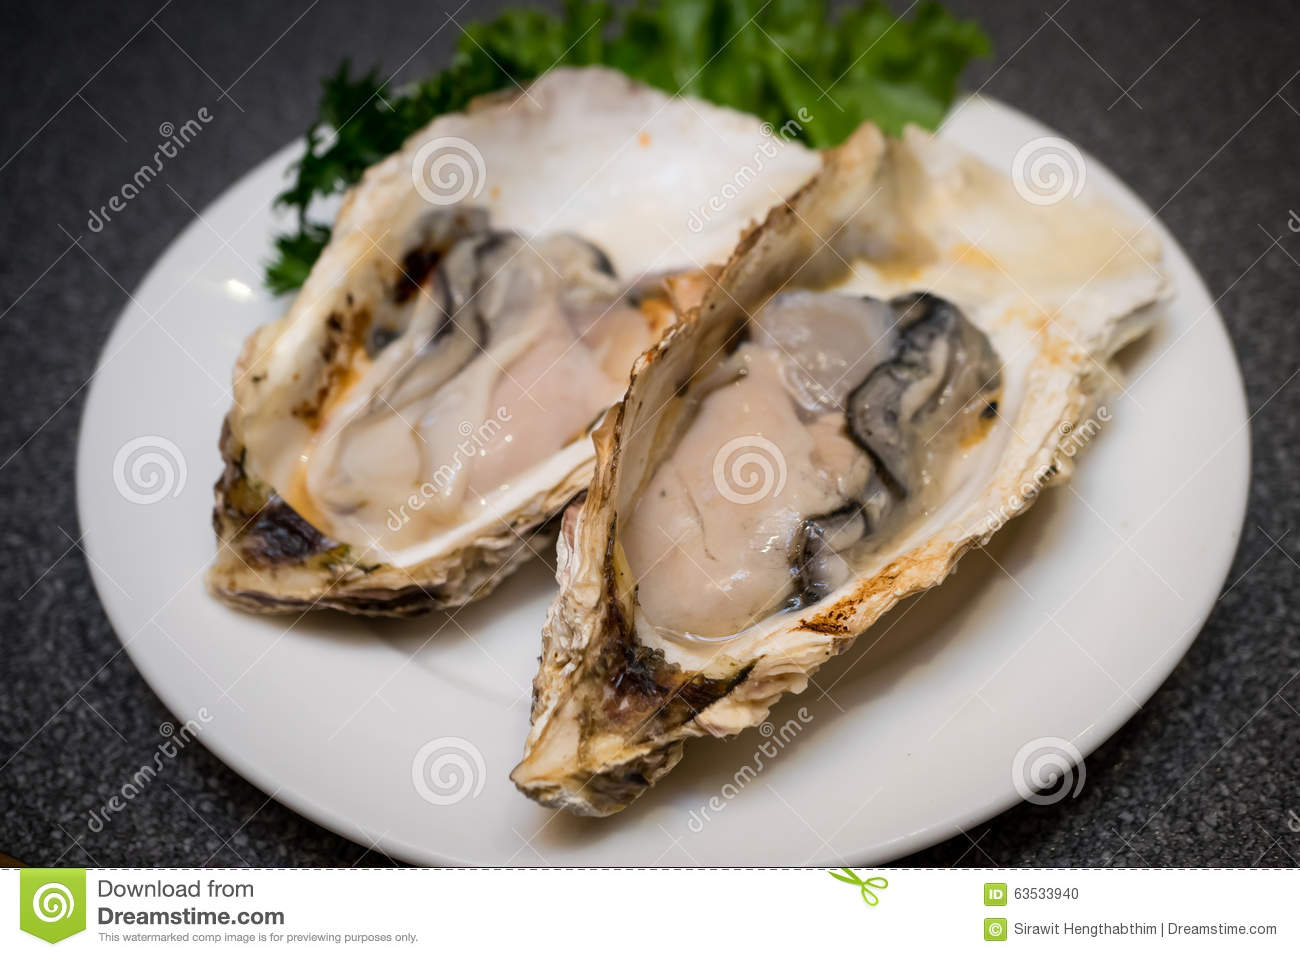 Fresh raw oysters - photo#20